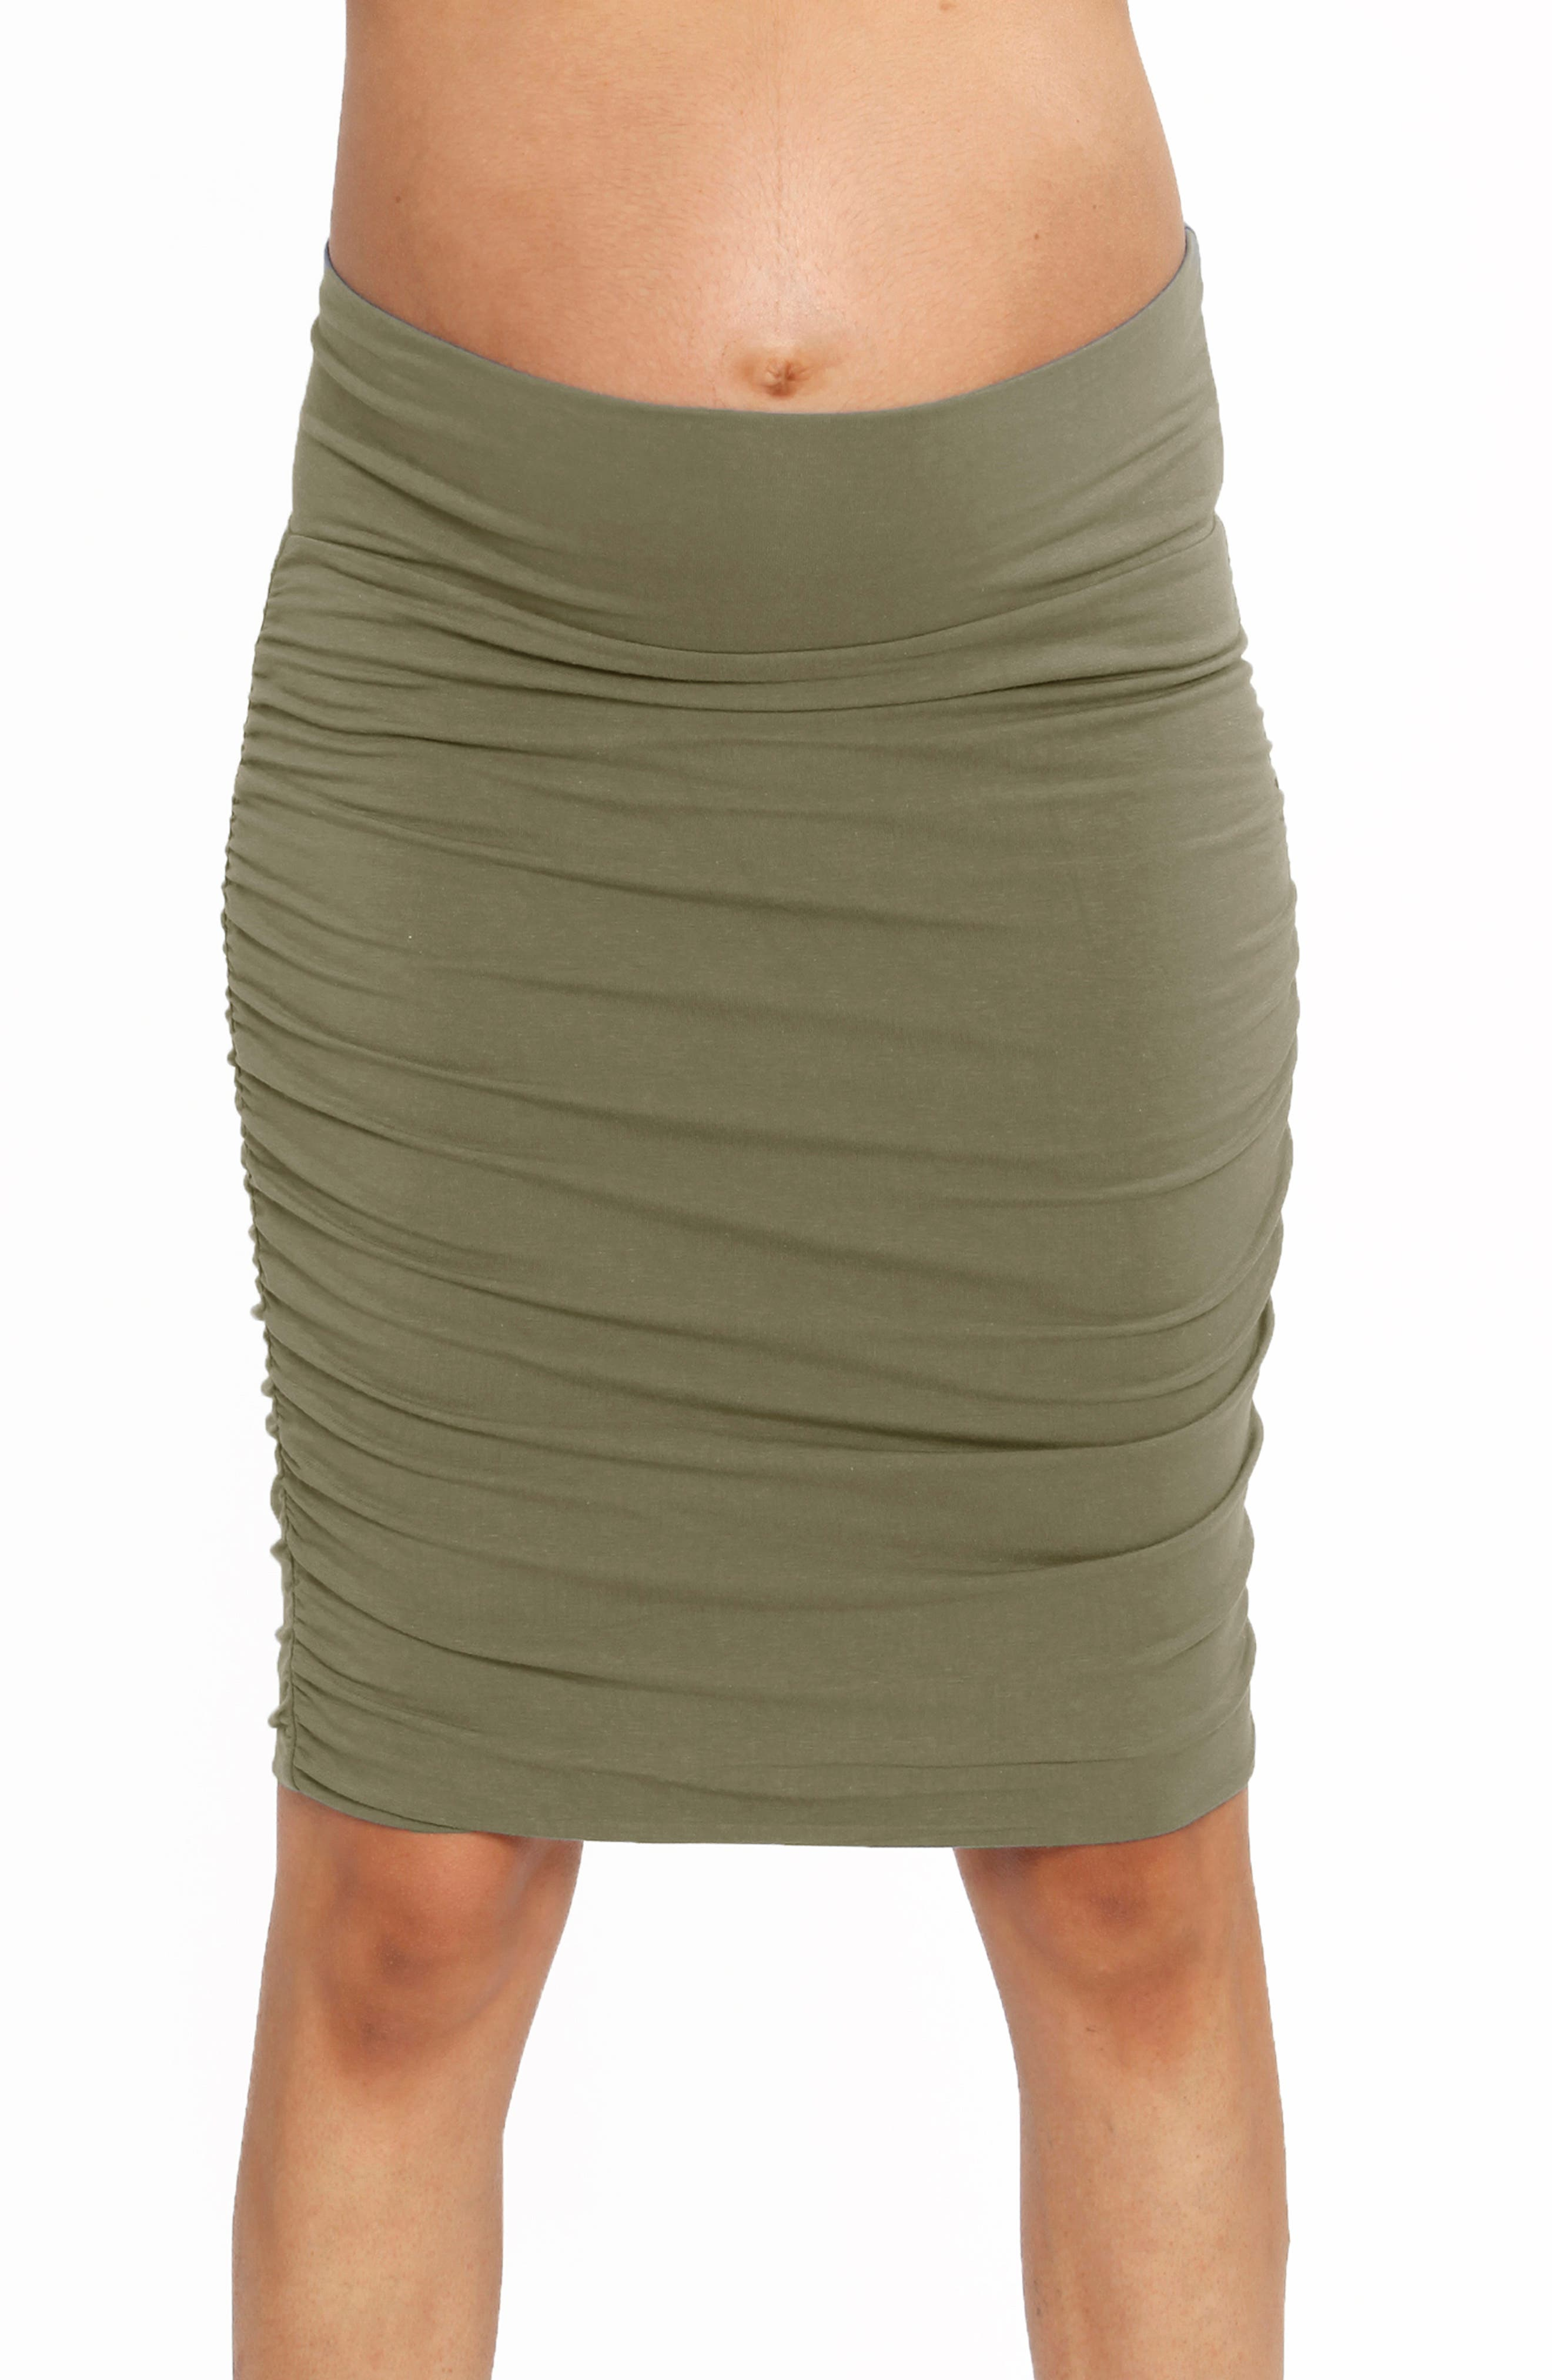 Go from the office to grabbing lunch with friends in this figure-skimming skirt that\\\'s ruched at the sides, making it perfect for your growing baby bump. Style Name: Angel Maternity Ruched Maternity Skirt. Style Number: 6030783. Available in stores.